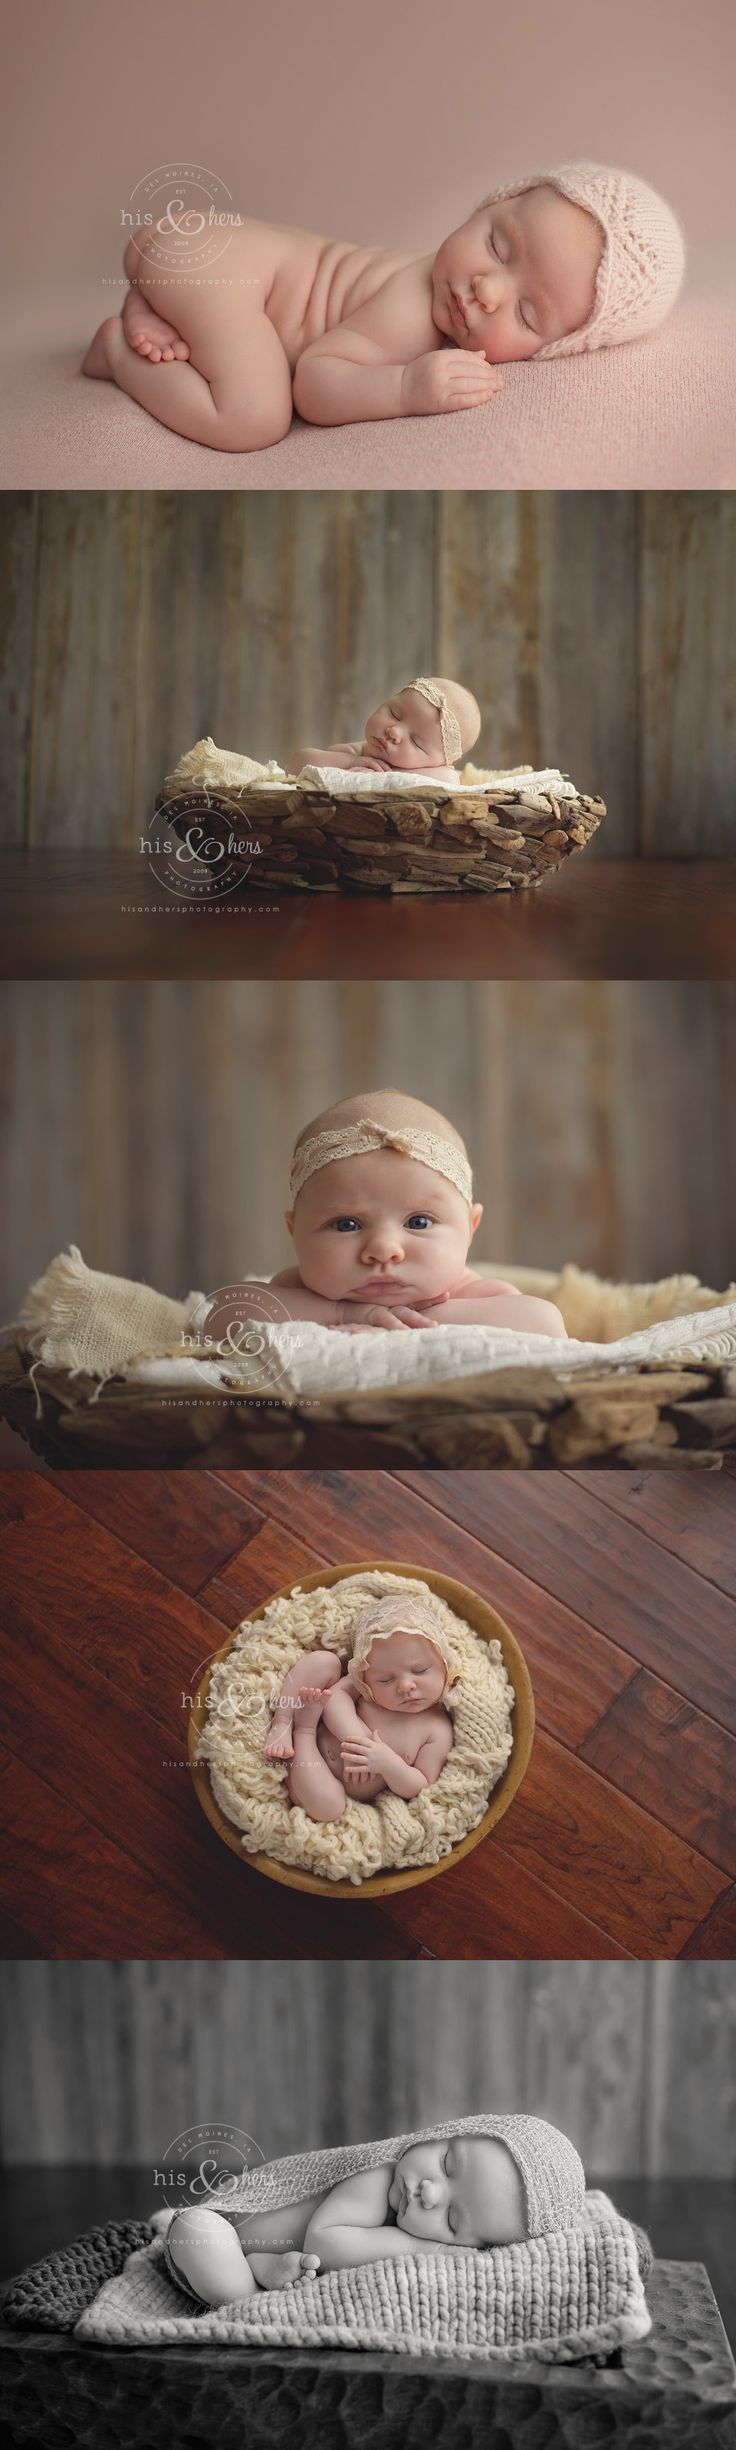 1 month old baby | Des Moines, Iowa baby photographer, Darcy Milder | His & Hers Photography